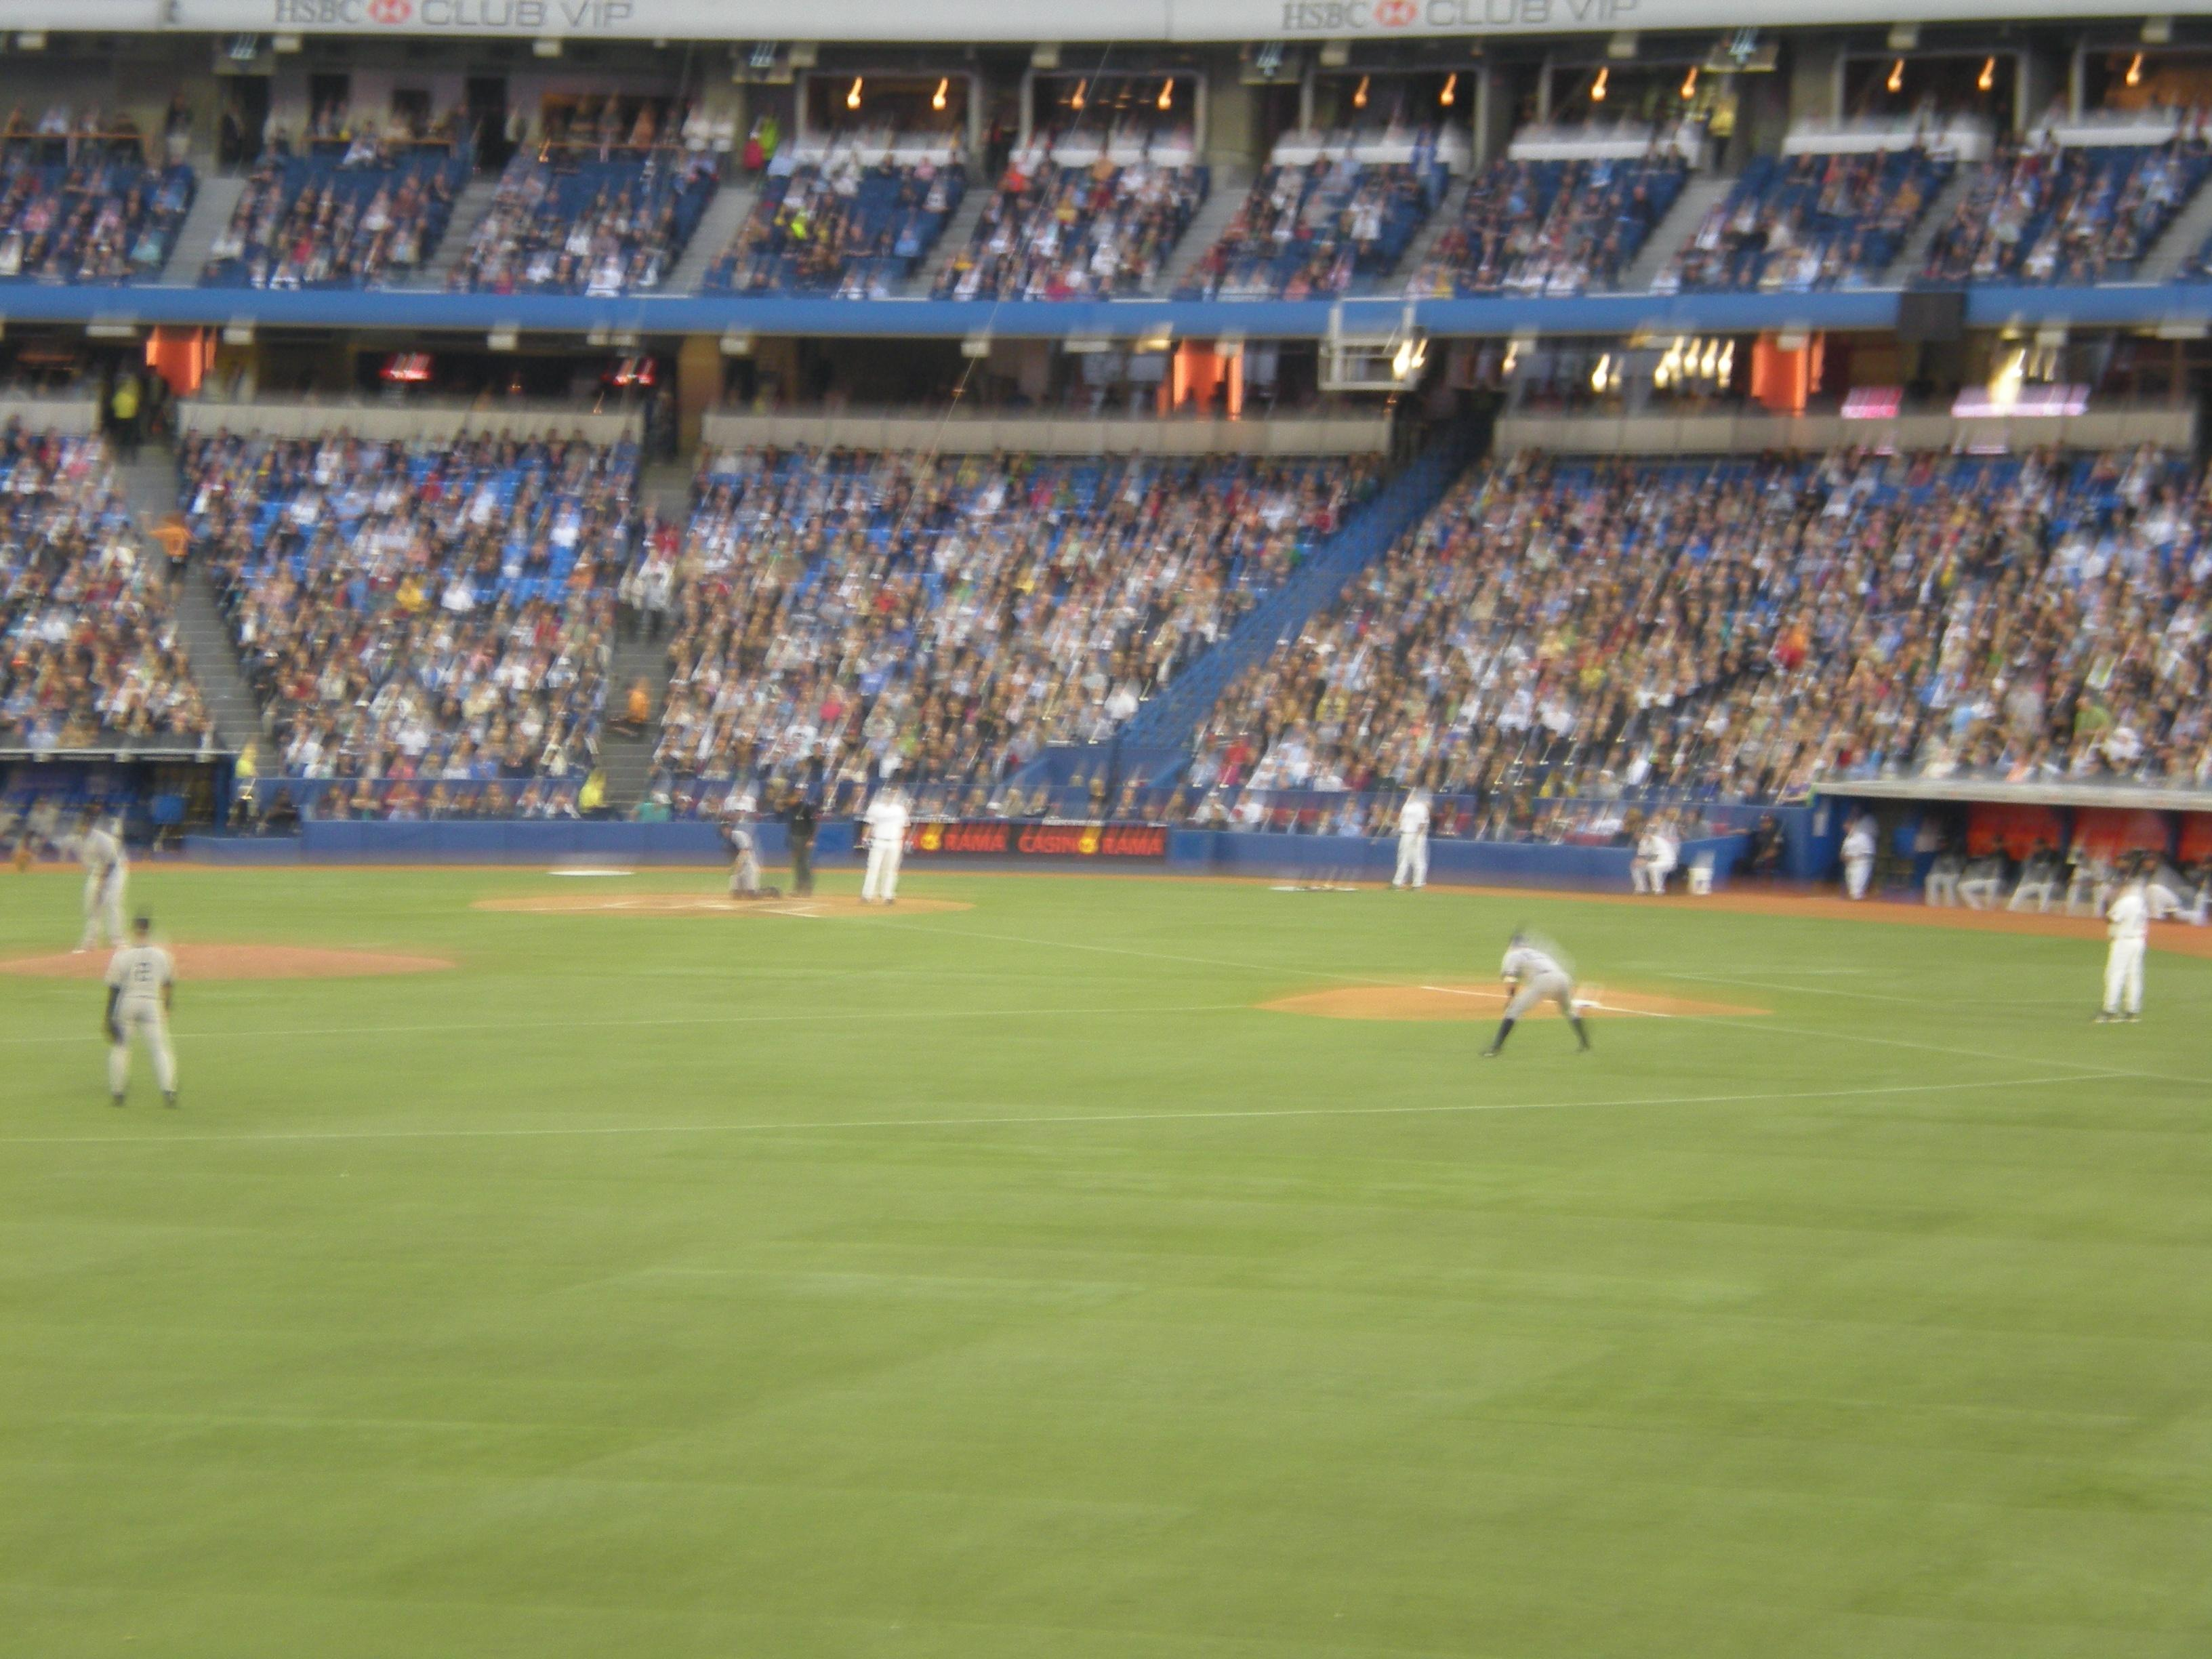 Rogers Centre Section 138R Row 1 Seat 4